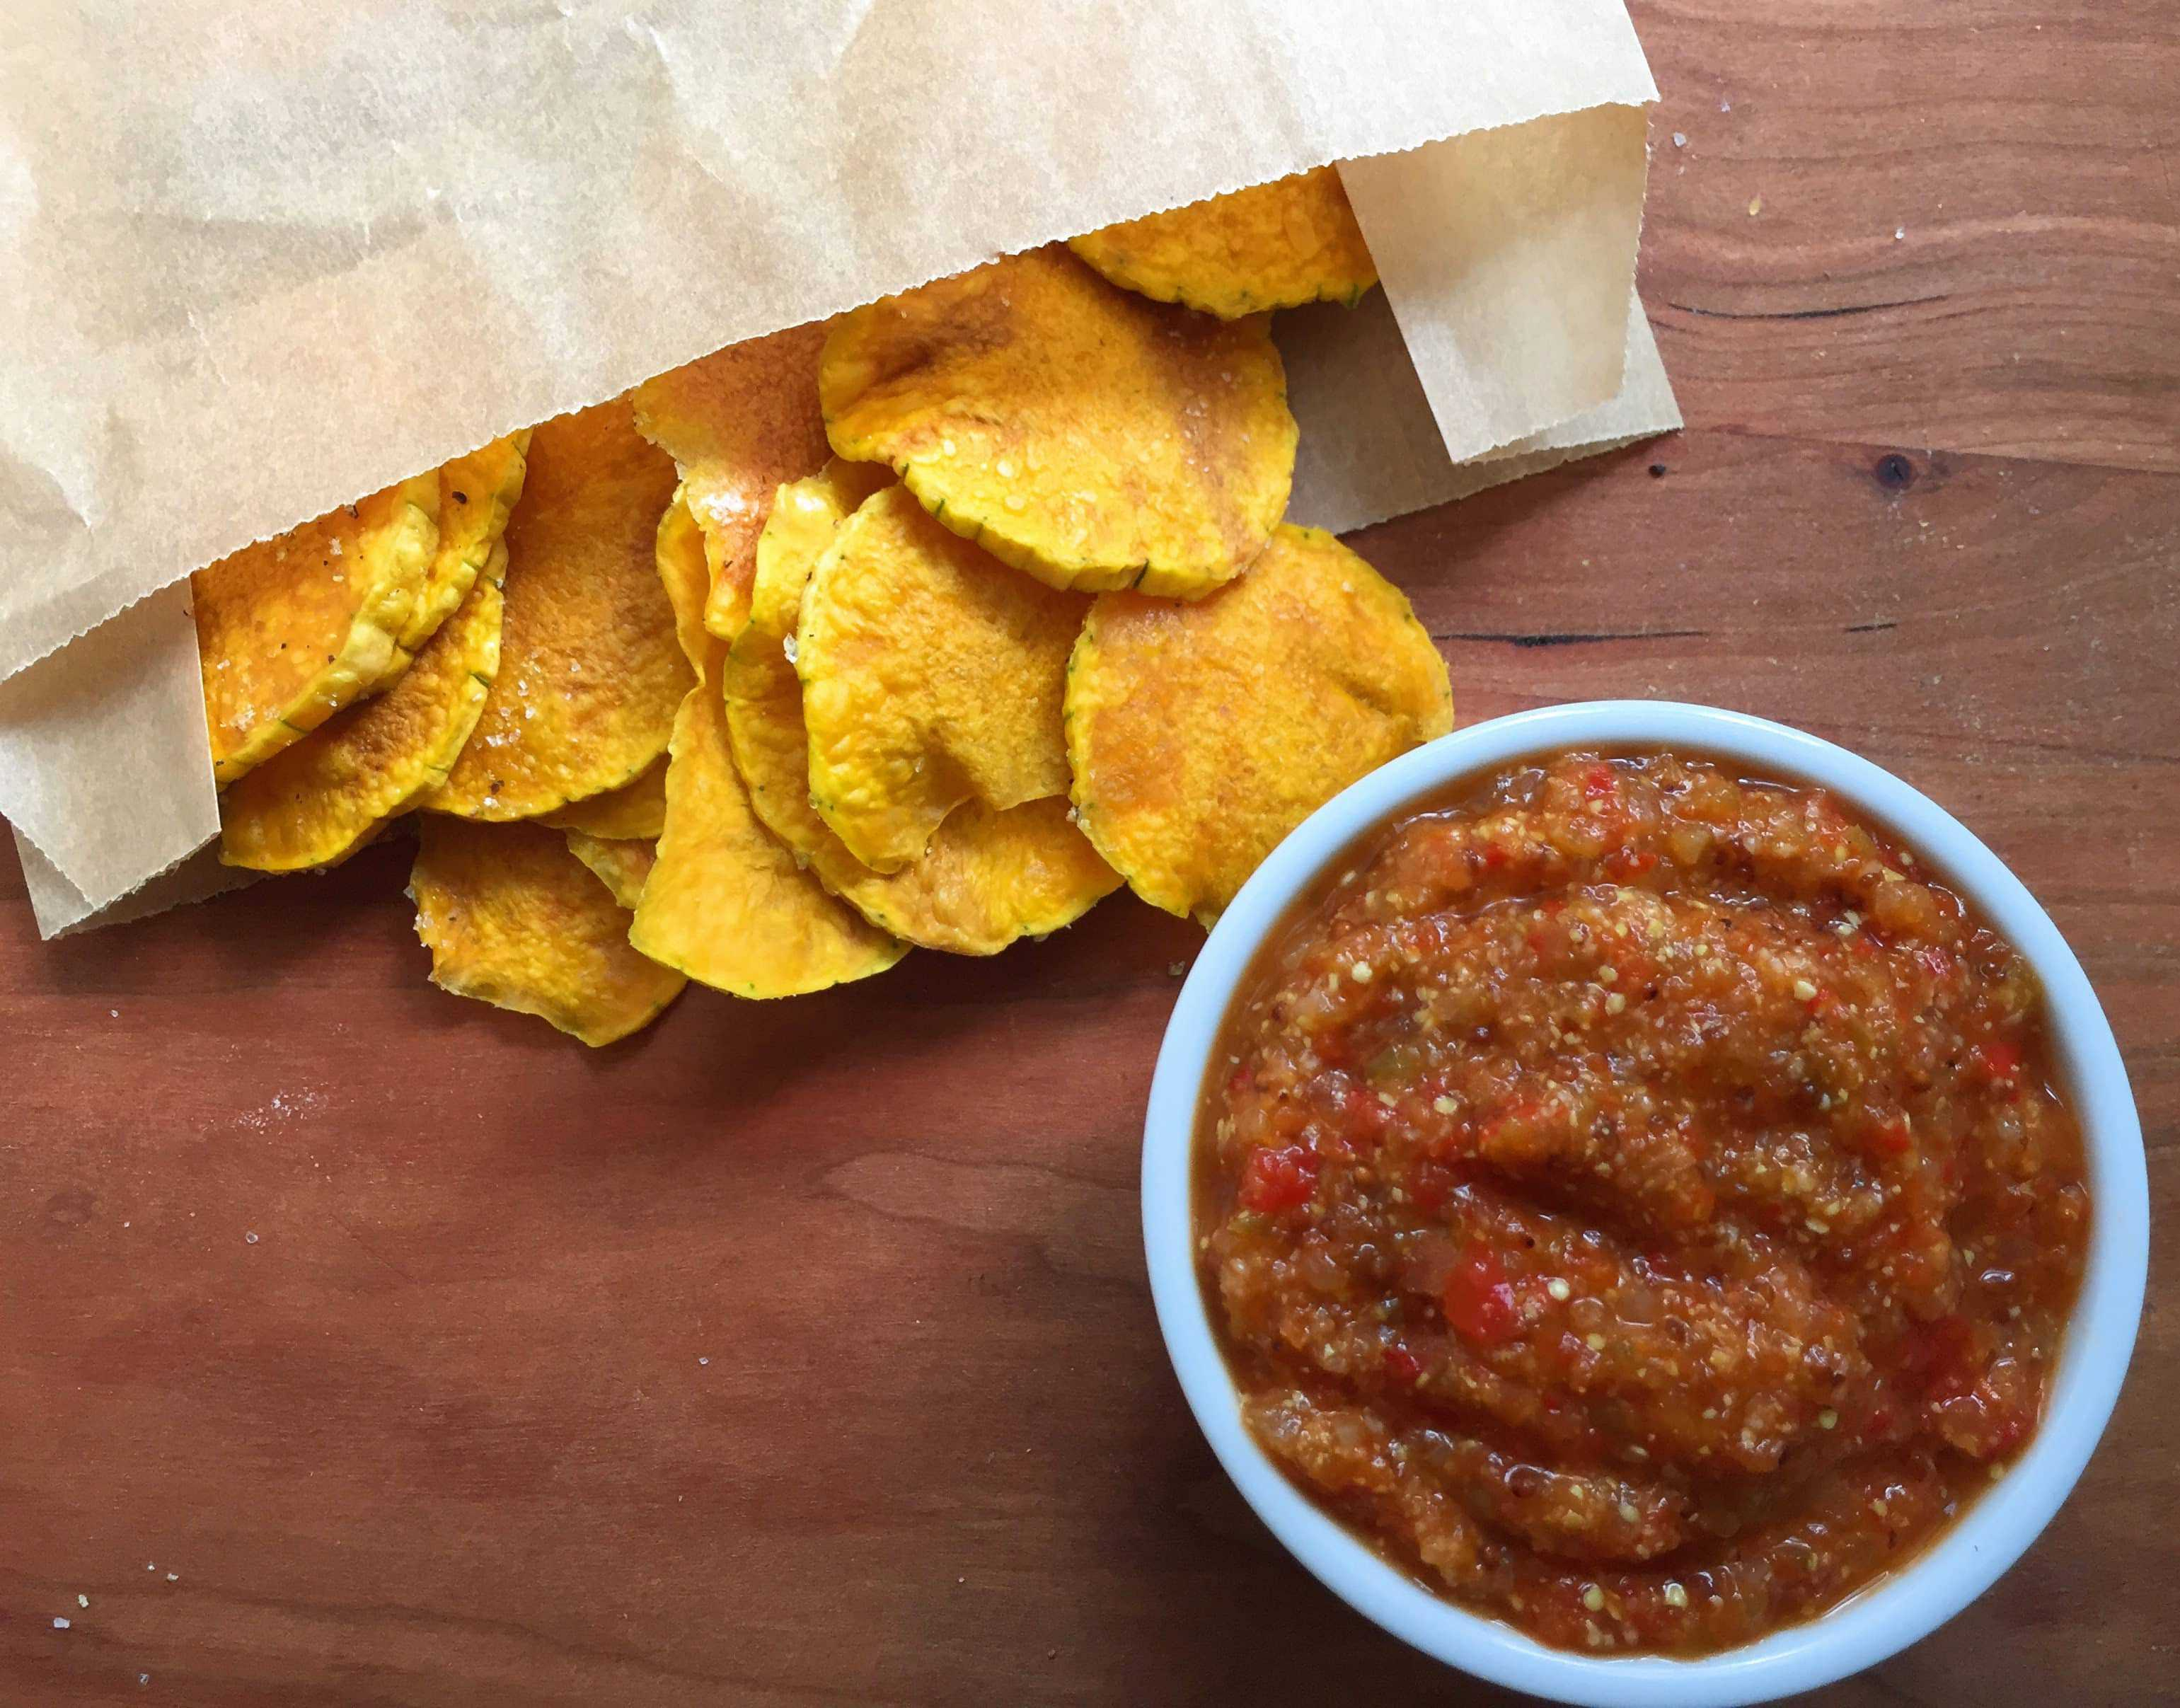 mypaleos_microwave_butternut_squash_chips_with_panamanian_hot_sauce_five_minute_gluten_free_sugar_free_paleo